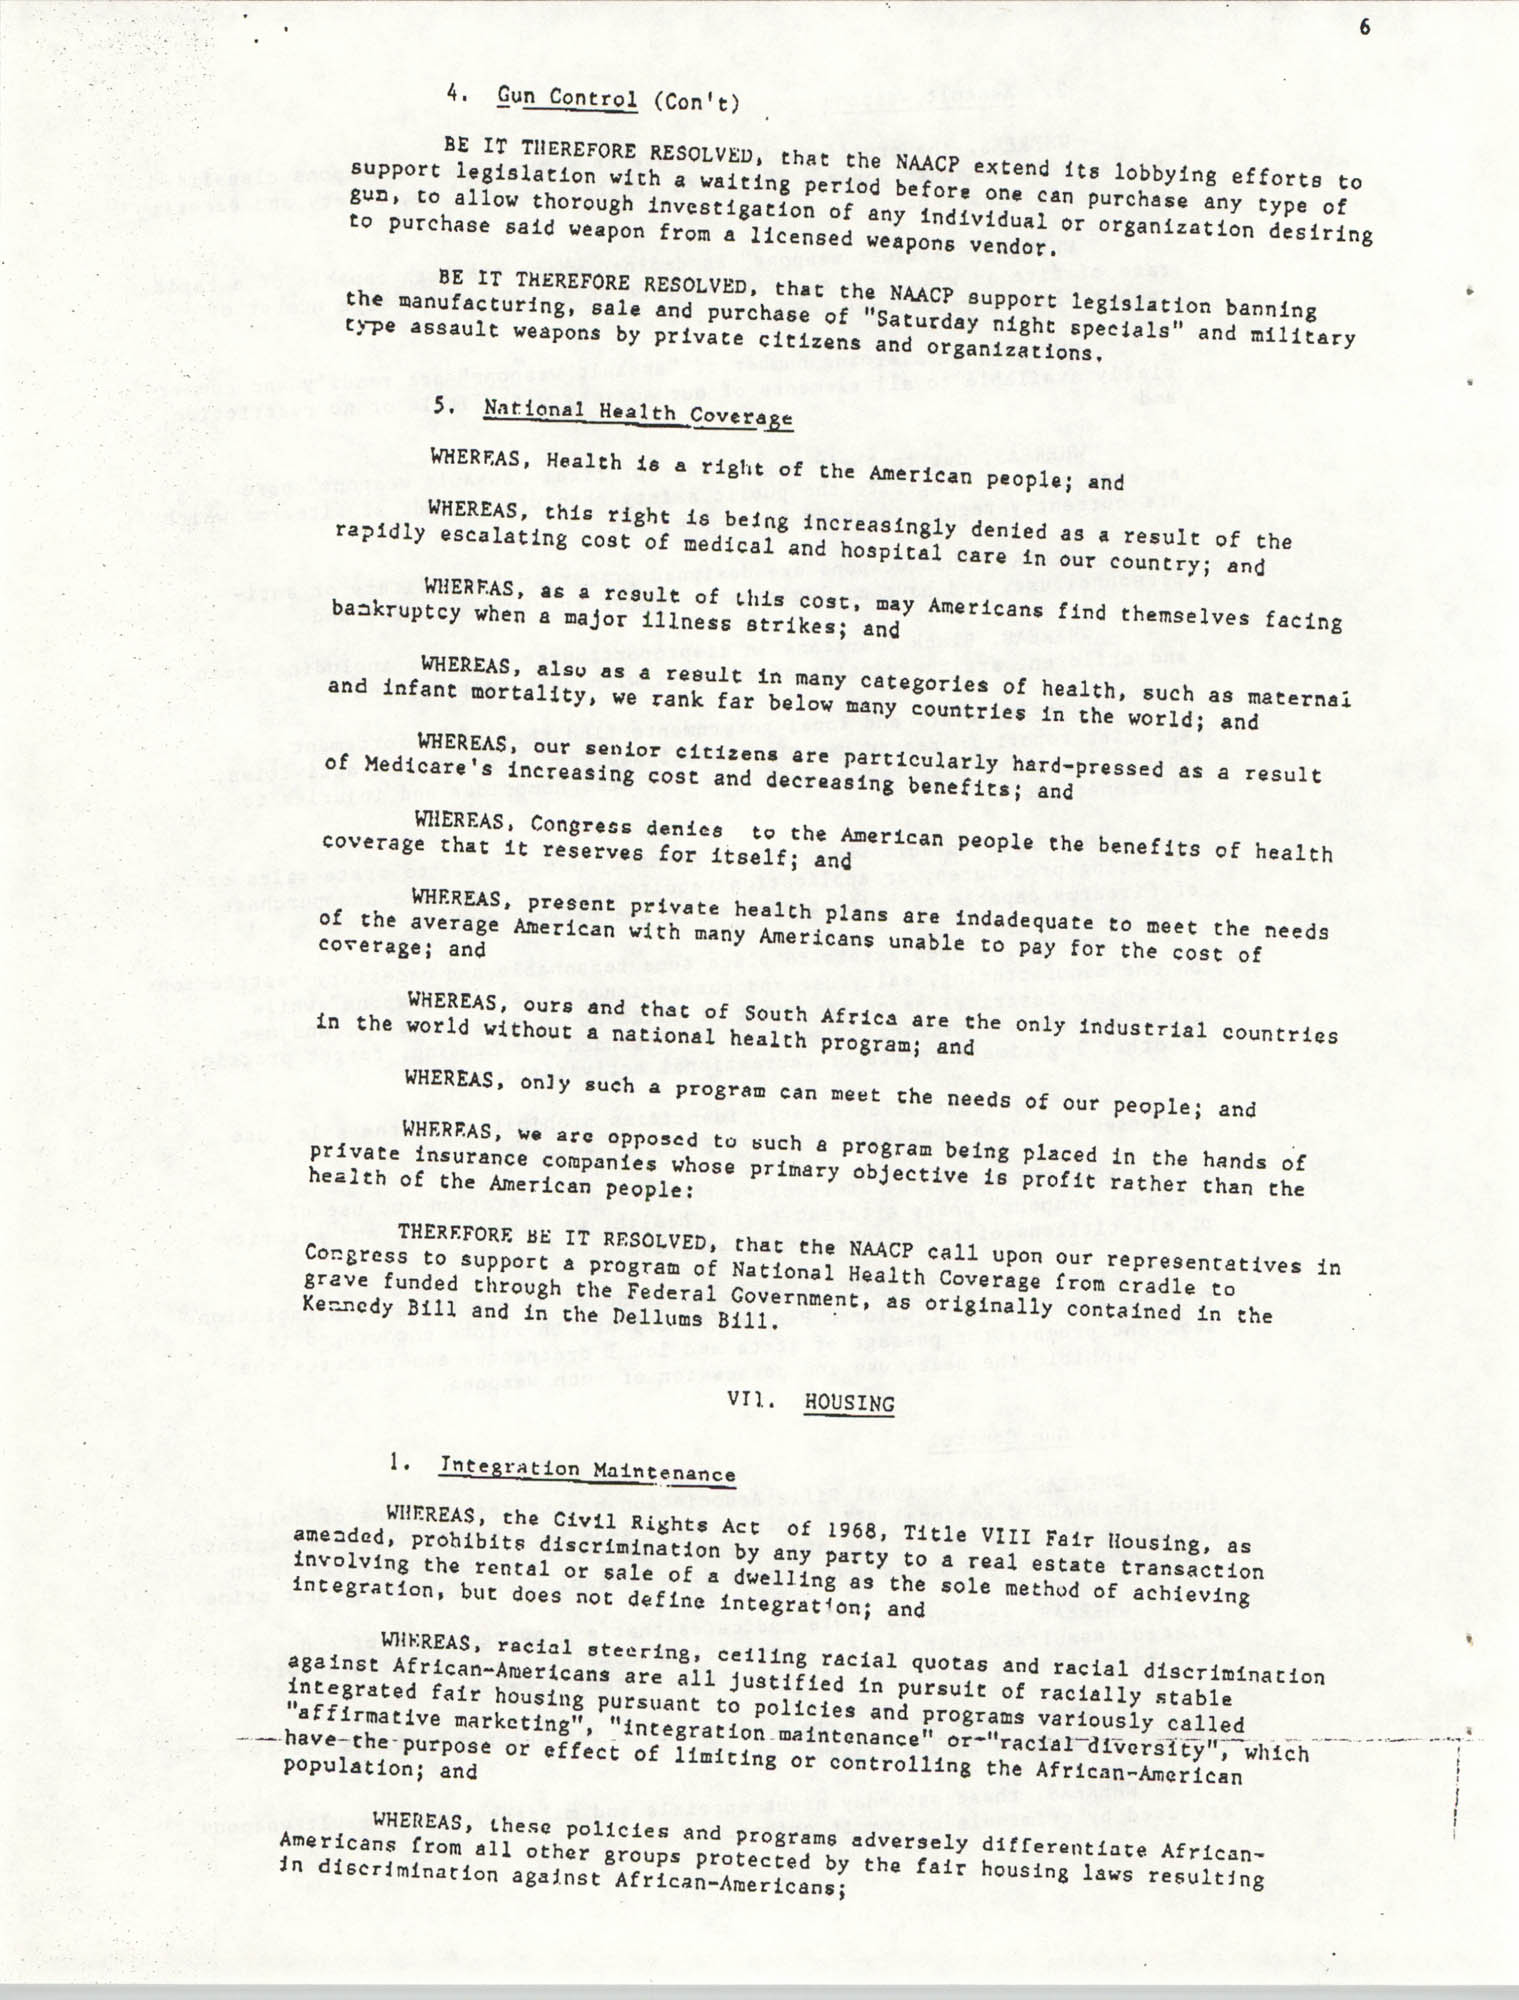 Resolutions Submitted Under Article X, Section 2 of the Constitution of the NAACP, Page 6